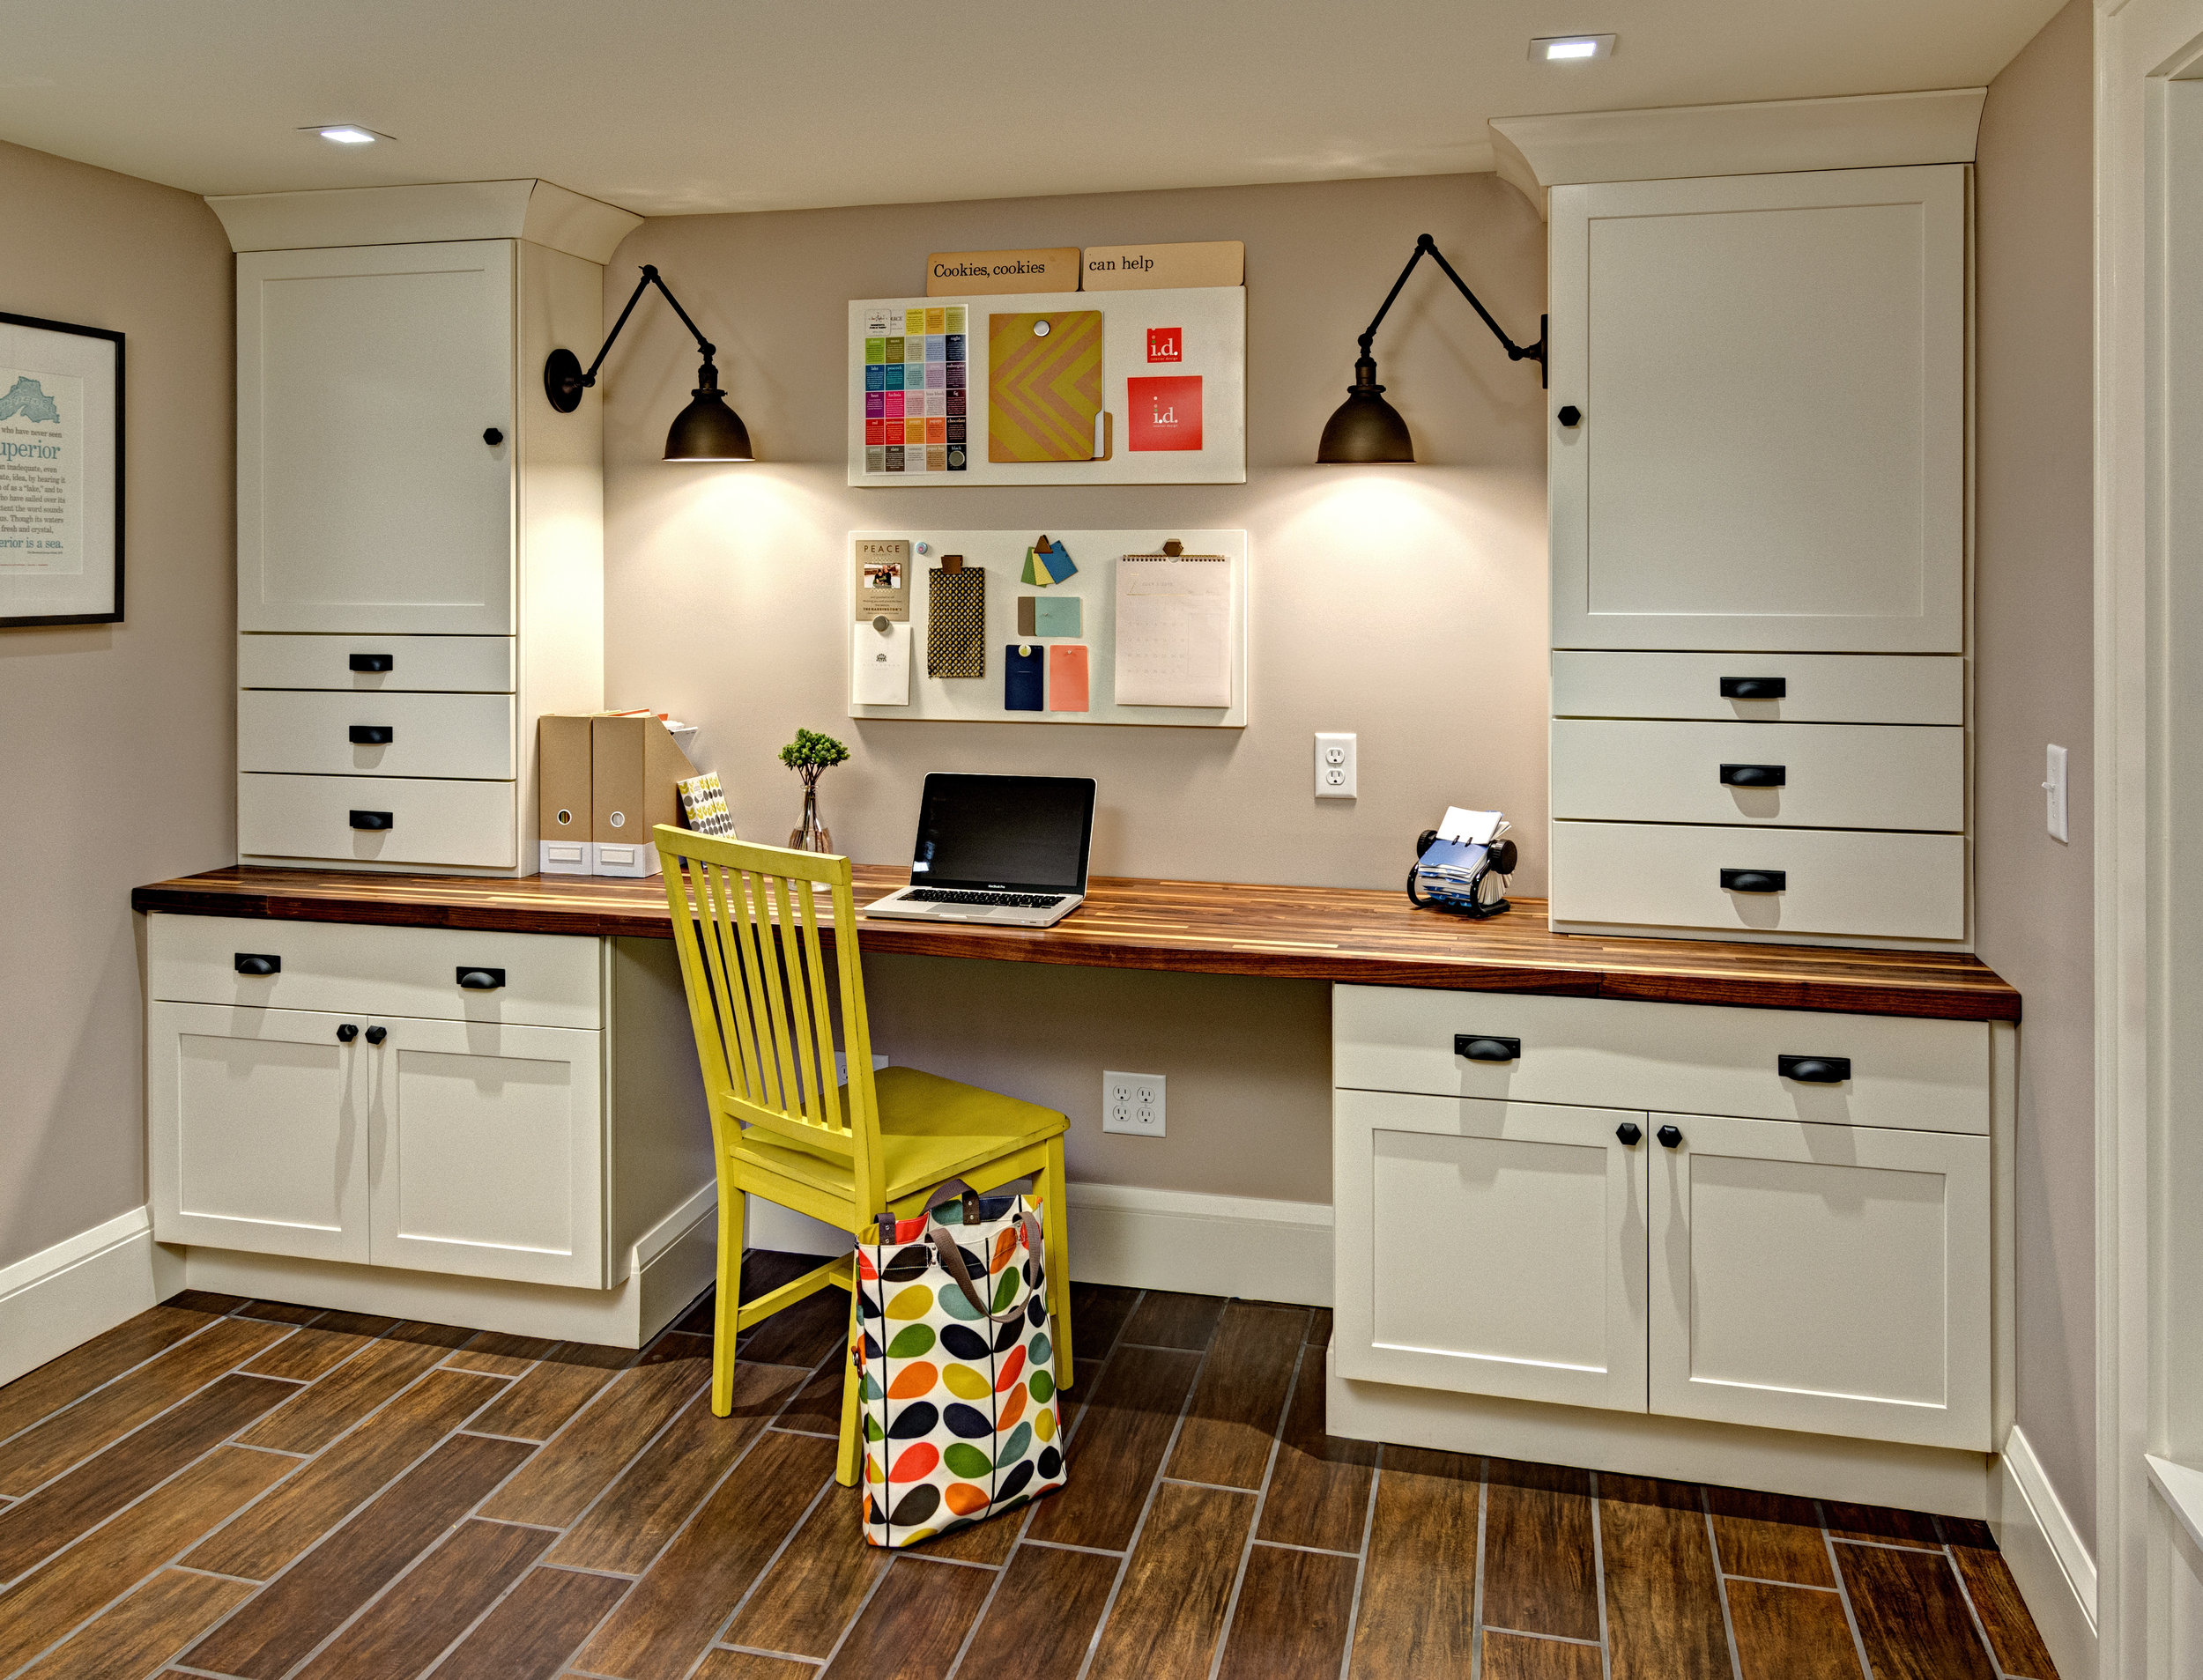 The homeowners wanted to make better use of their unfinished basement. Semi-custom cabinets and a walnut top create a small desk area in the space.